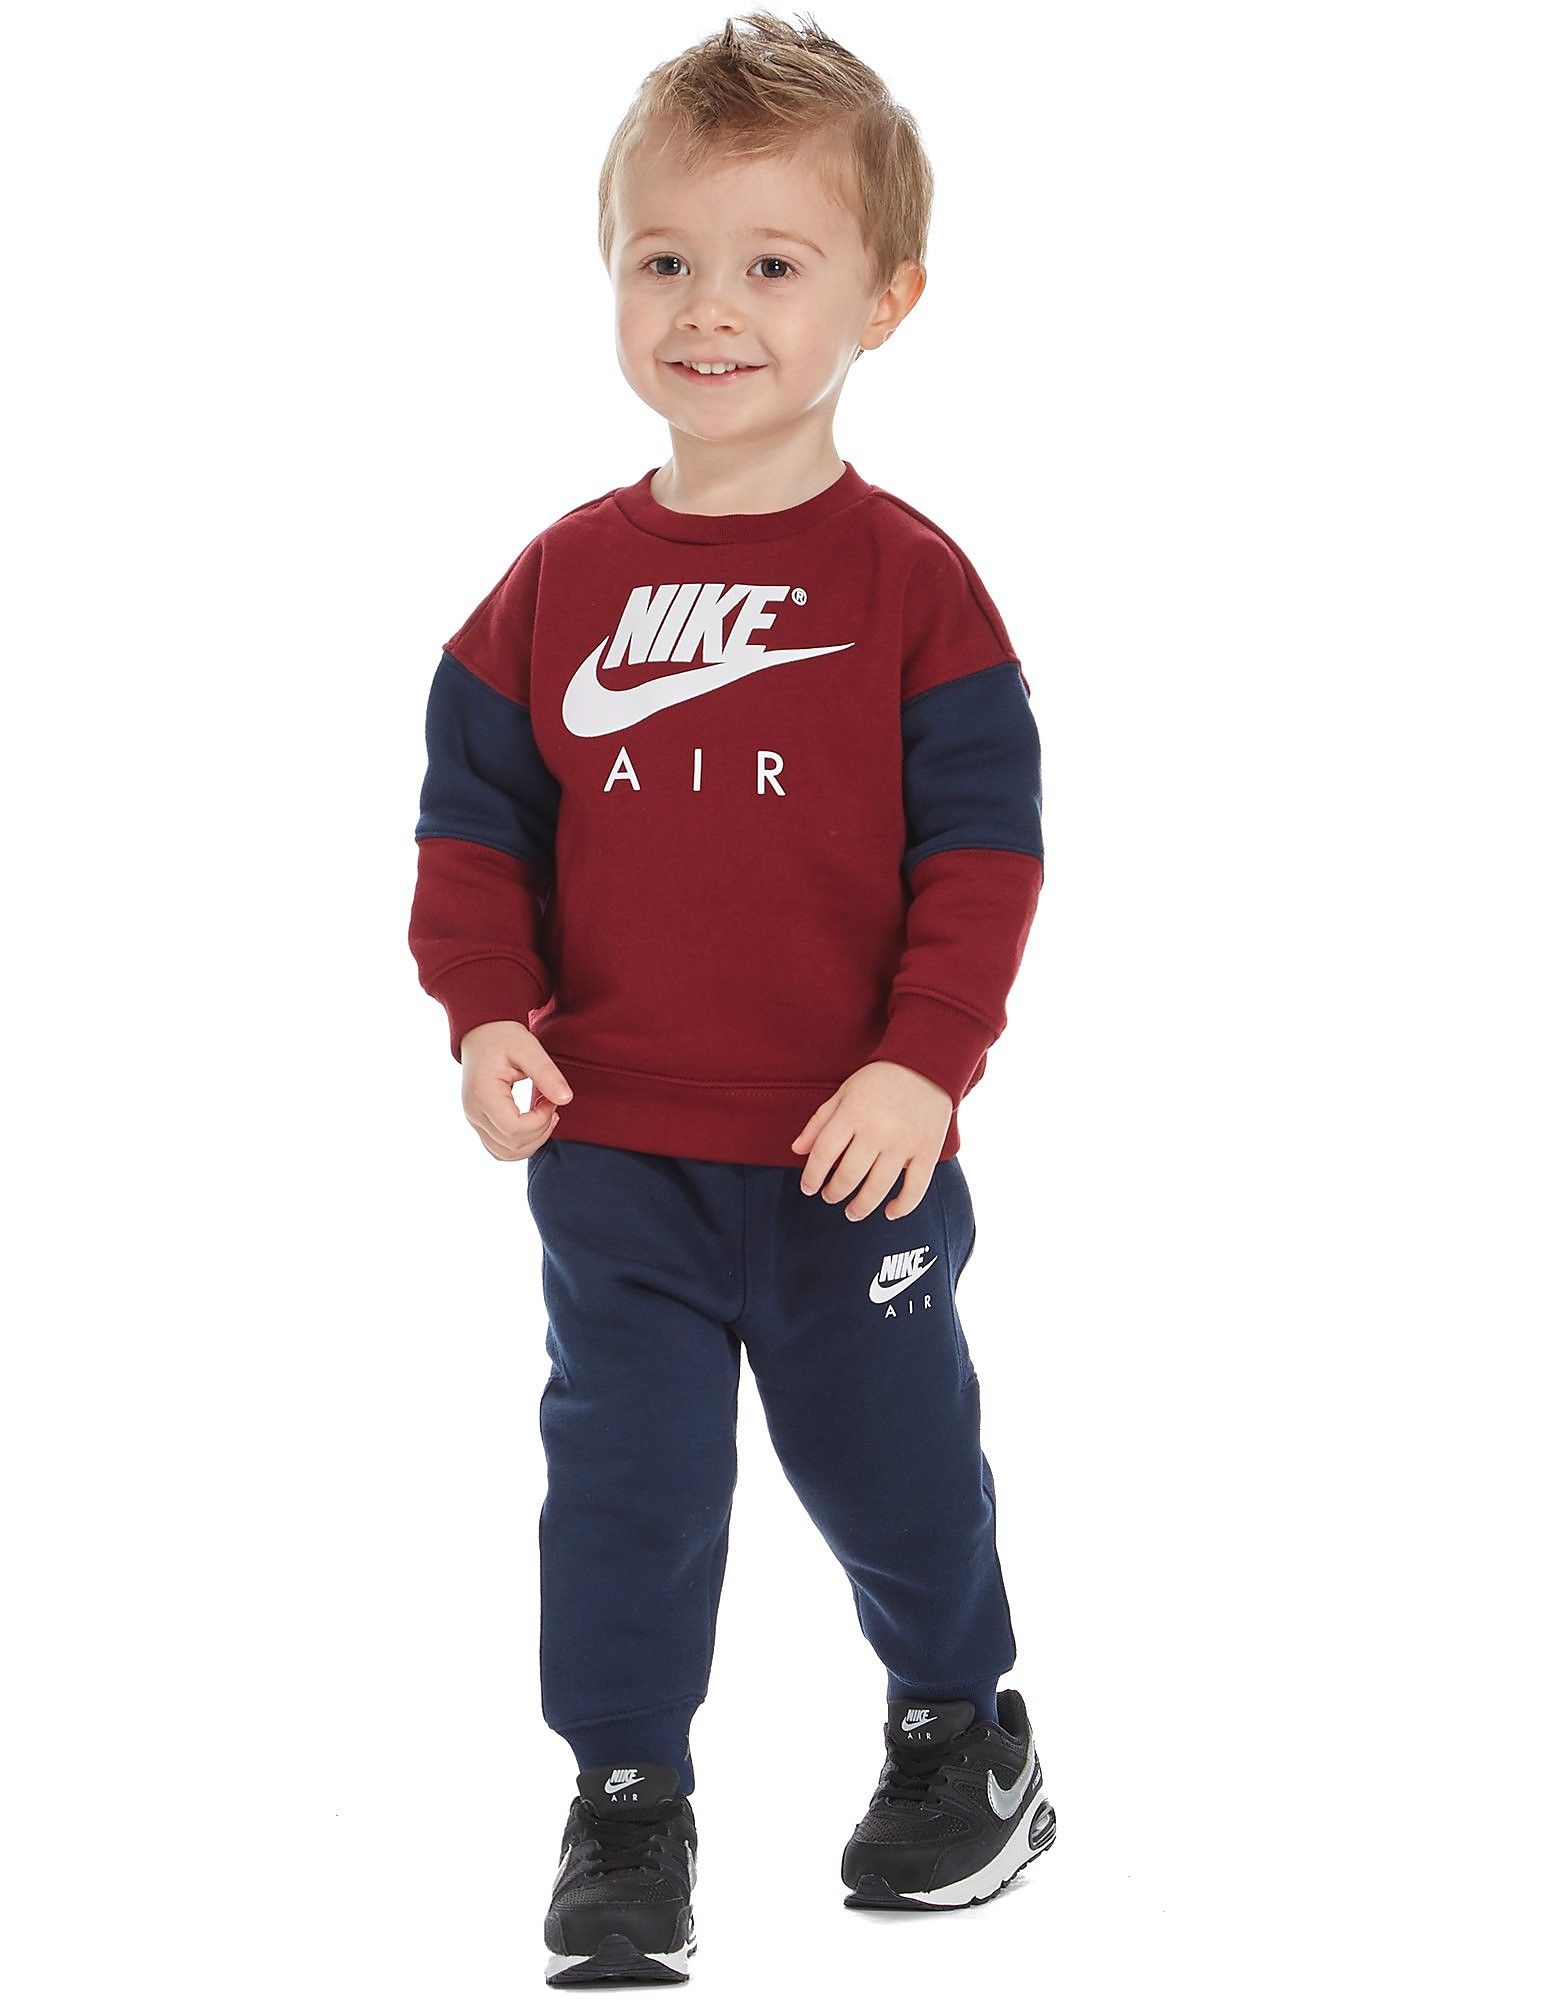 Nike Air Crew Suit Infant